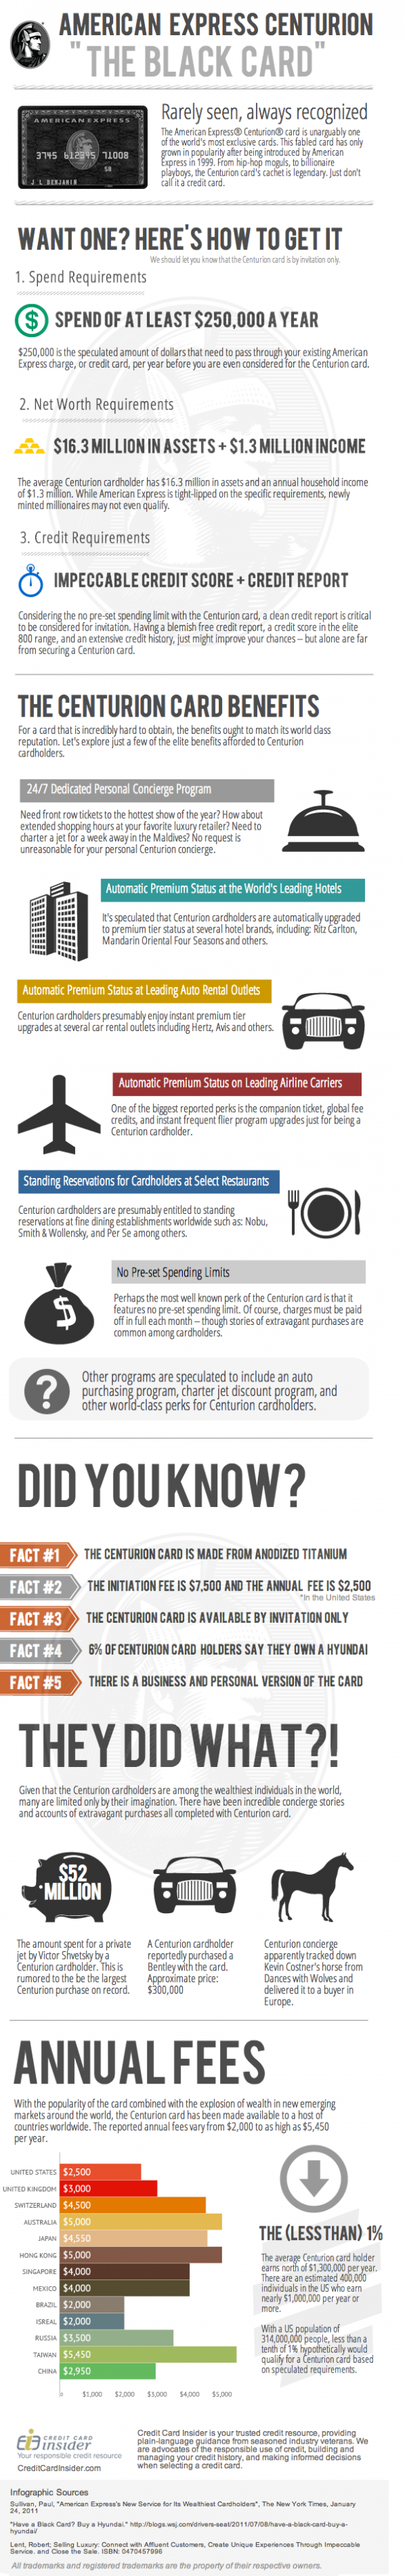 "The American Express Centurion ""Black Card"" Infographic"